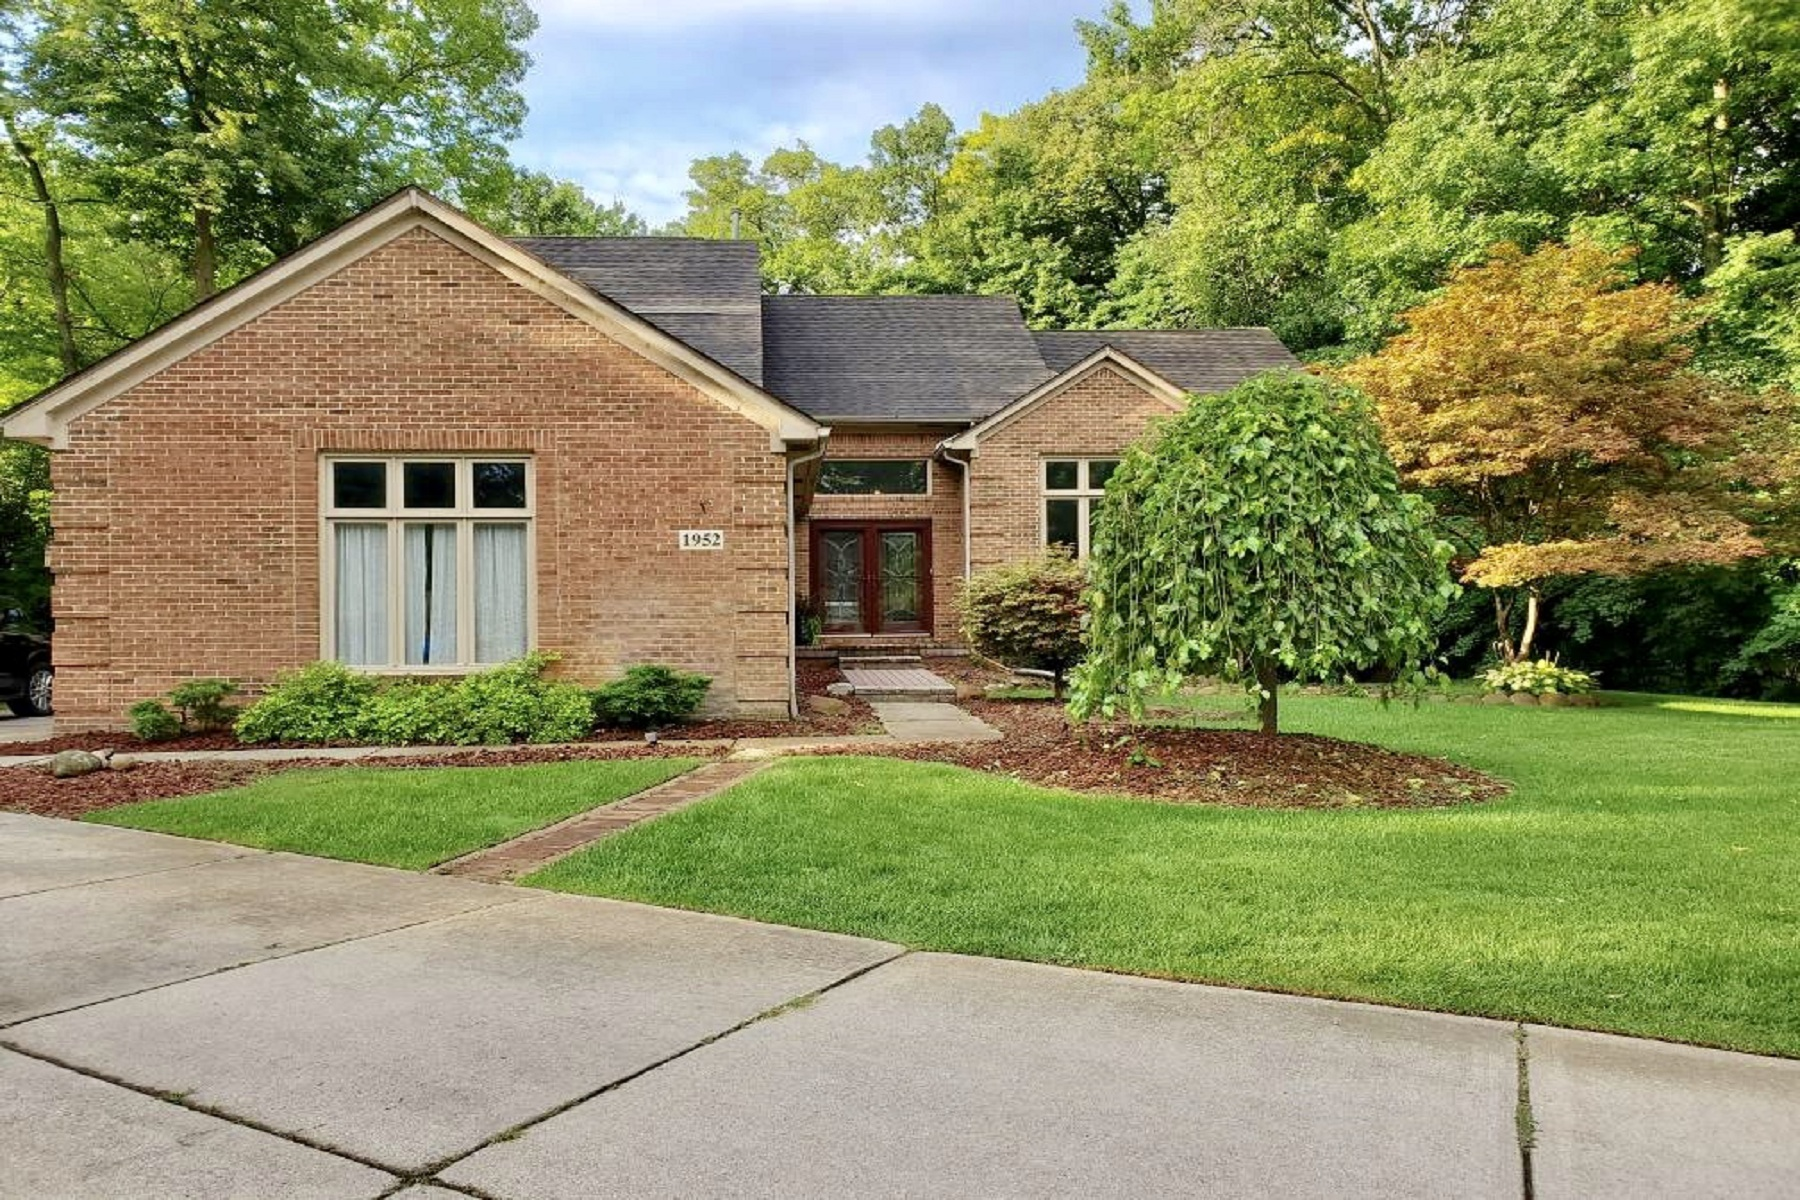 Single Family Homes for Sale at Commerce Township 1952 Hampshire Court Commerce Township, Michigan 48382 United States